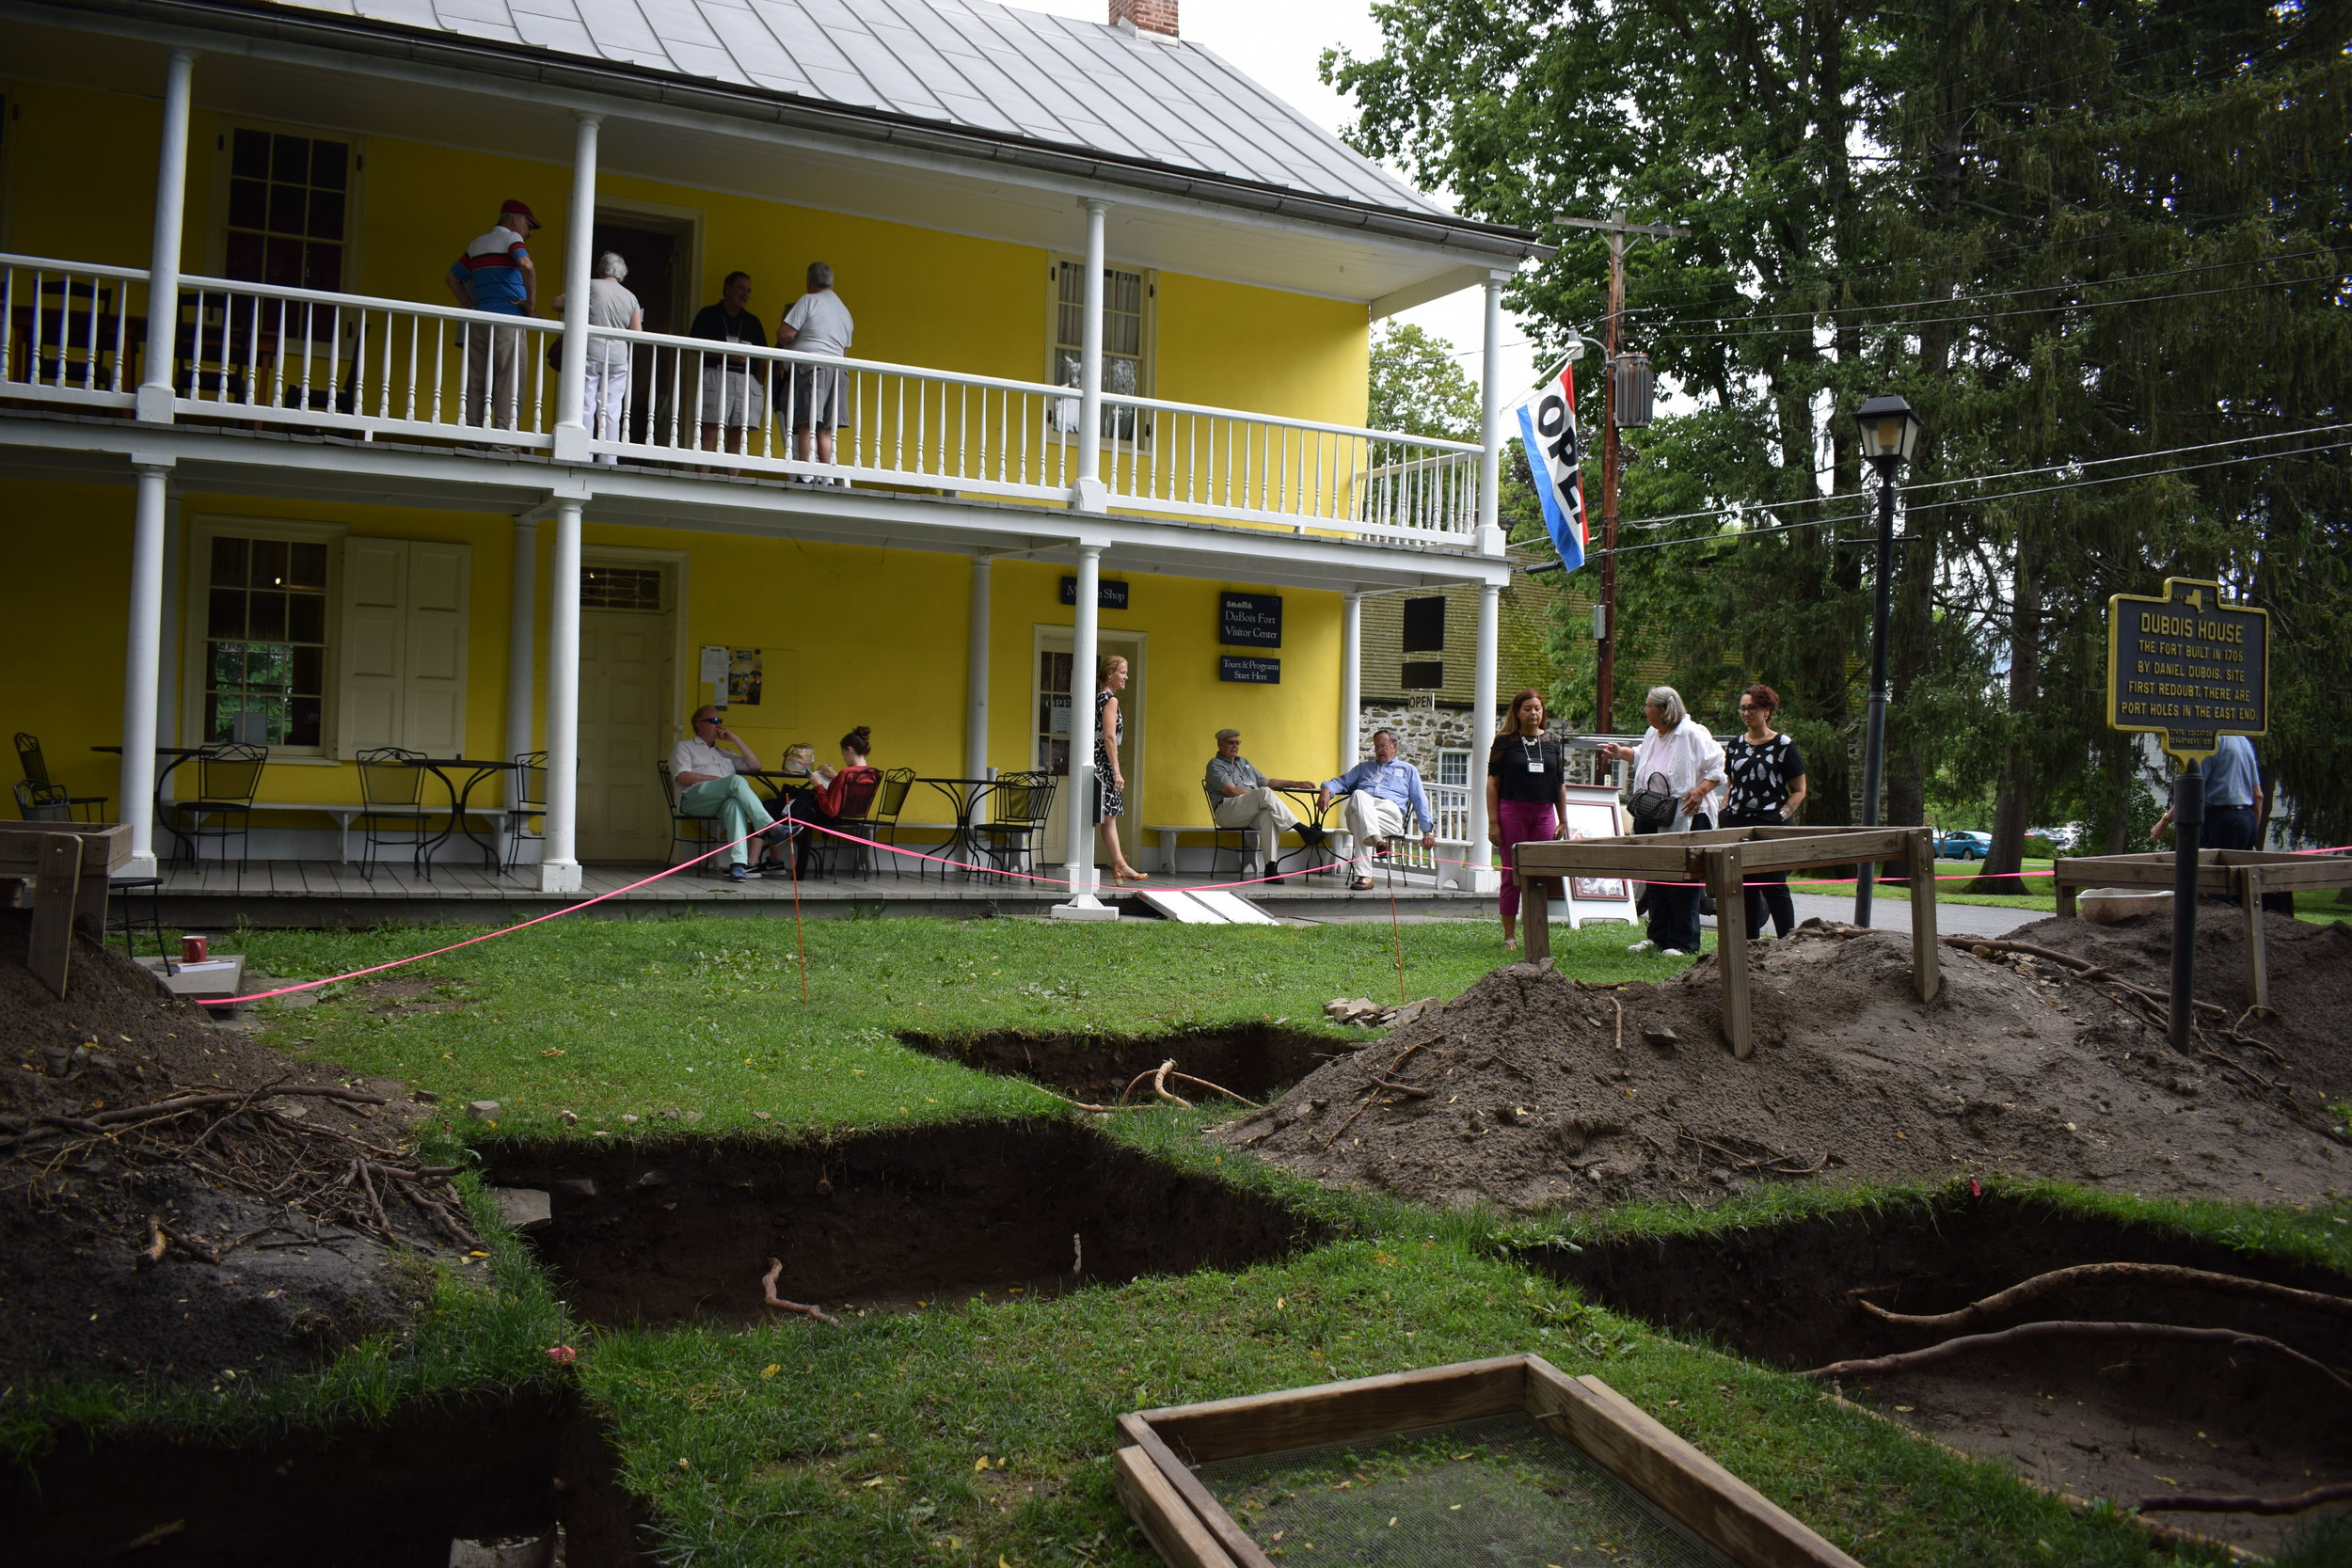 An archaeological dig in progress, being conducted by Dr. Joseph Diamond's Archaeological Field School from SUNY New Paltz